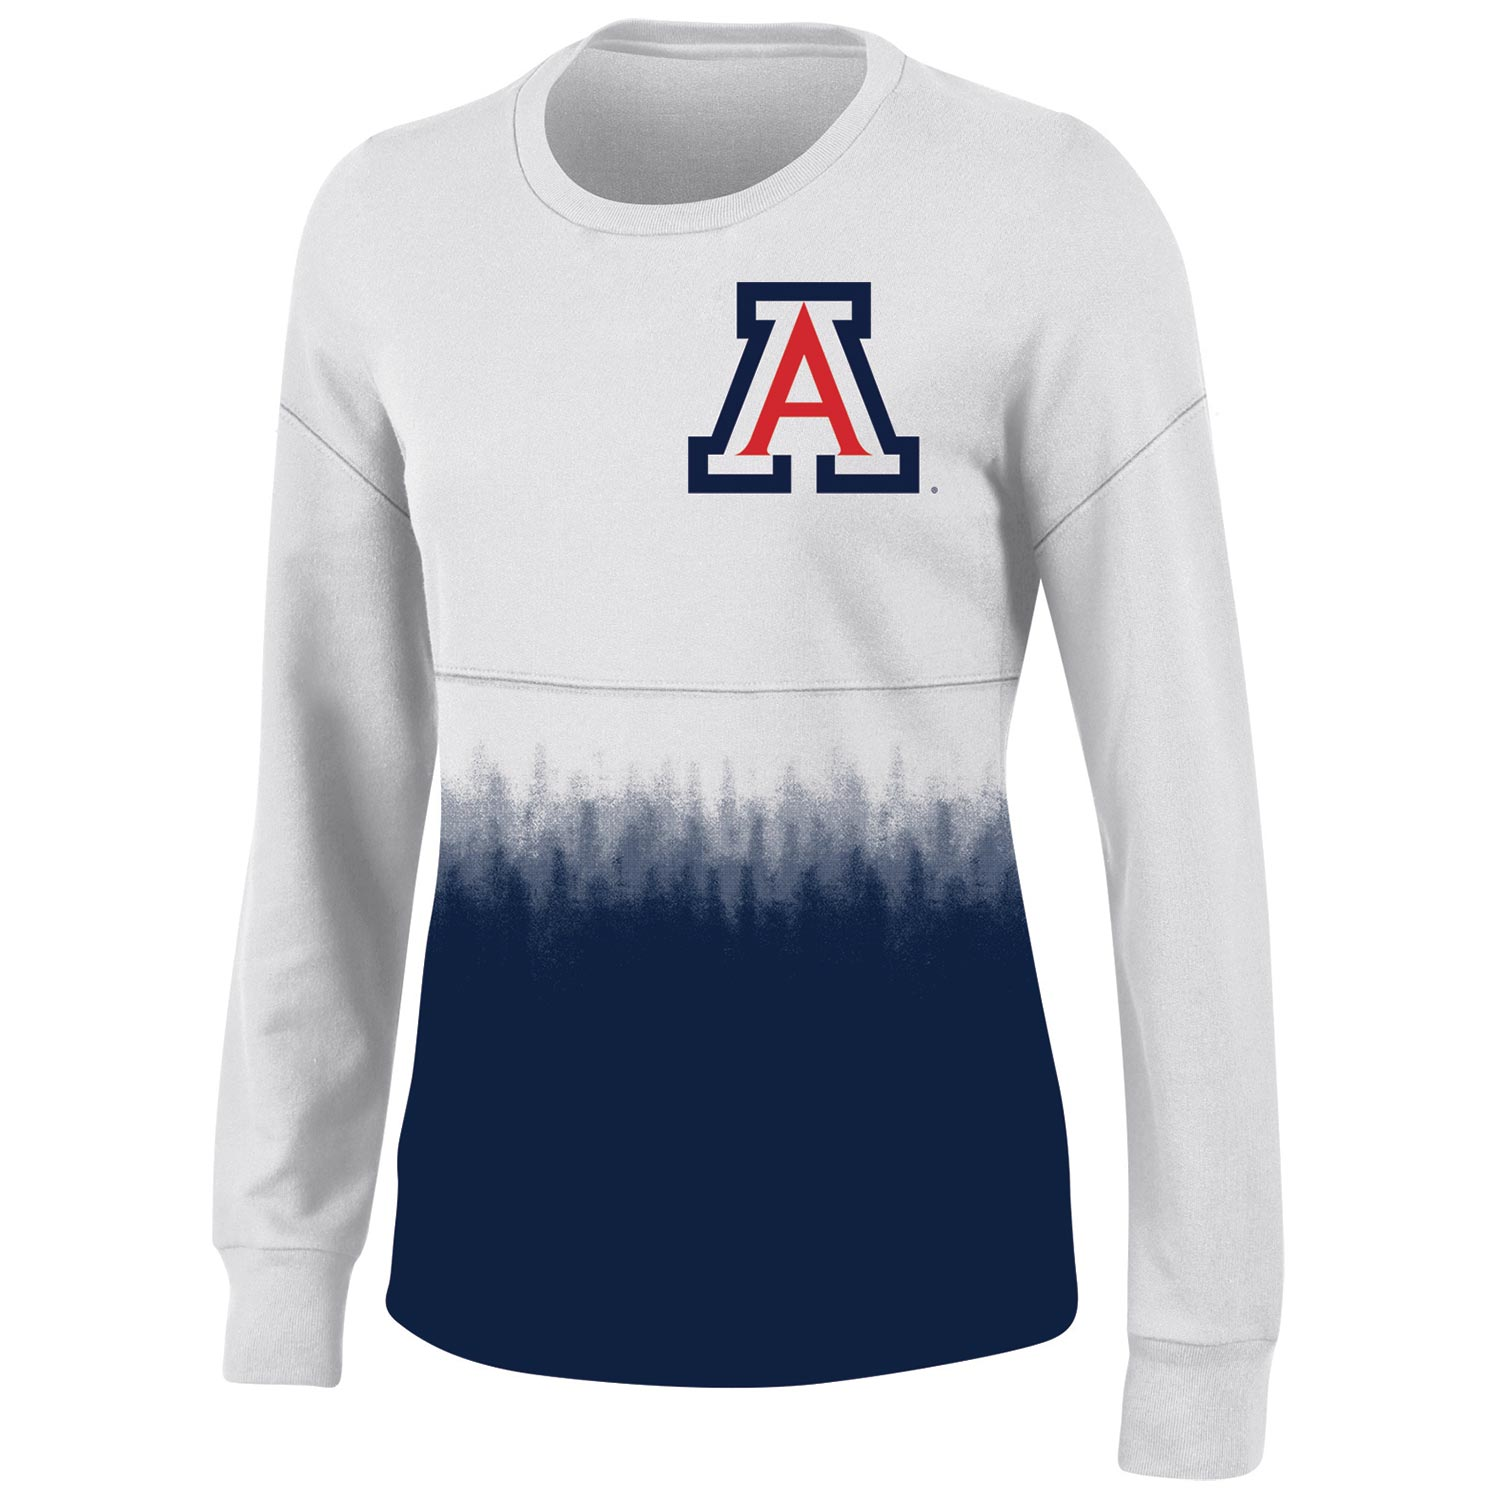 Women's White Arizona Wildcats Oversized Fan Long Sleeve T-Shirt